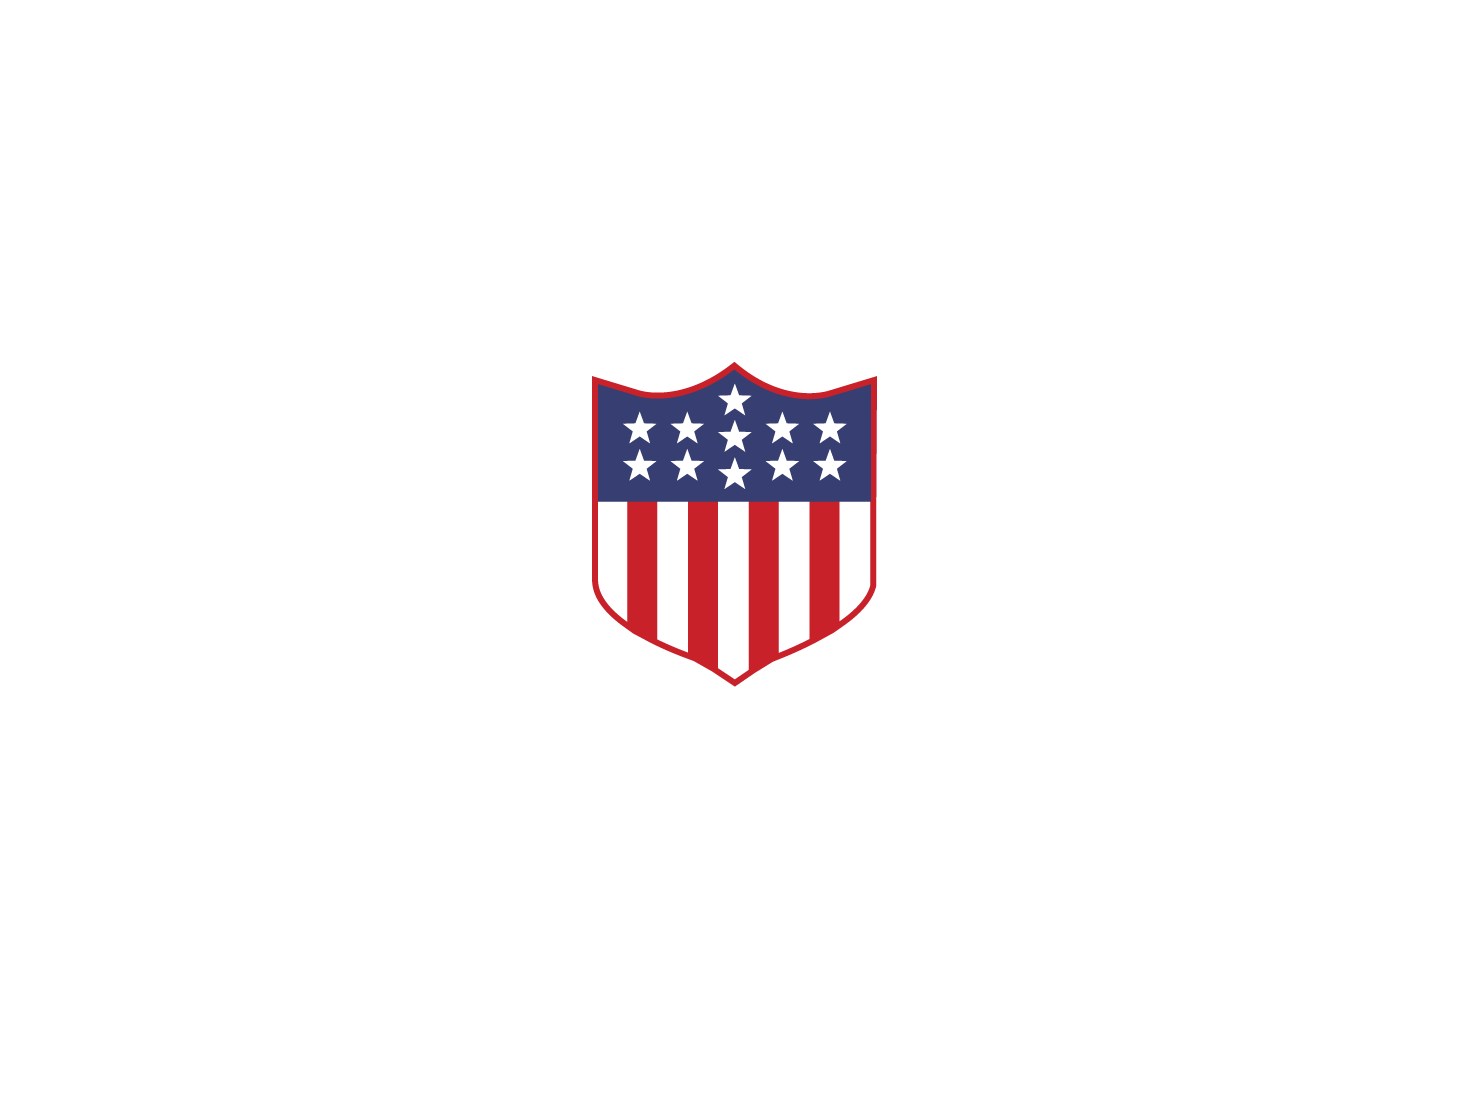 Heroes First Foundation